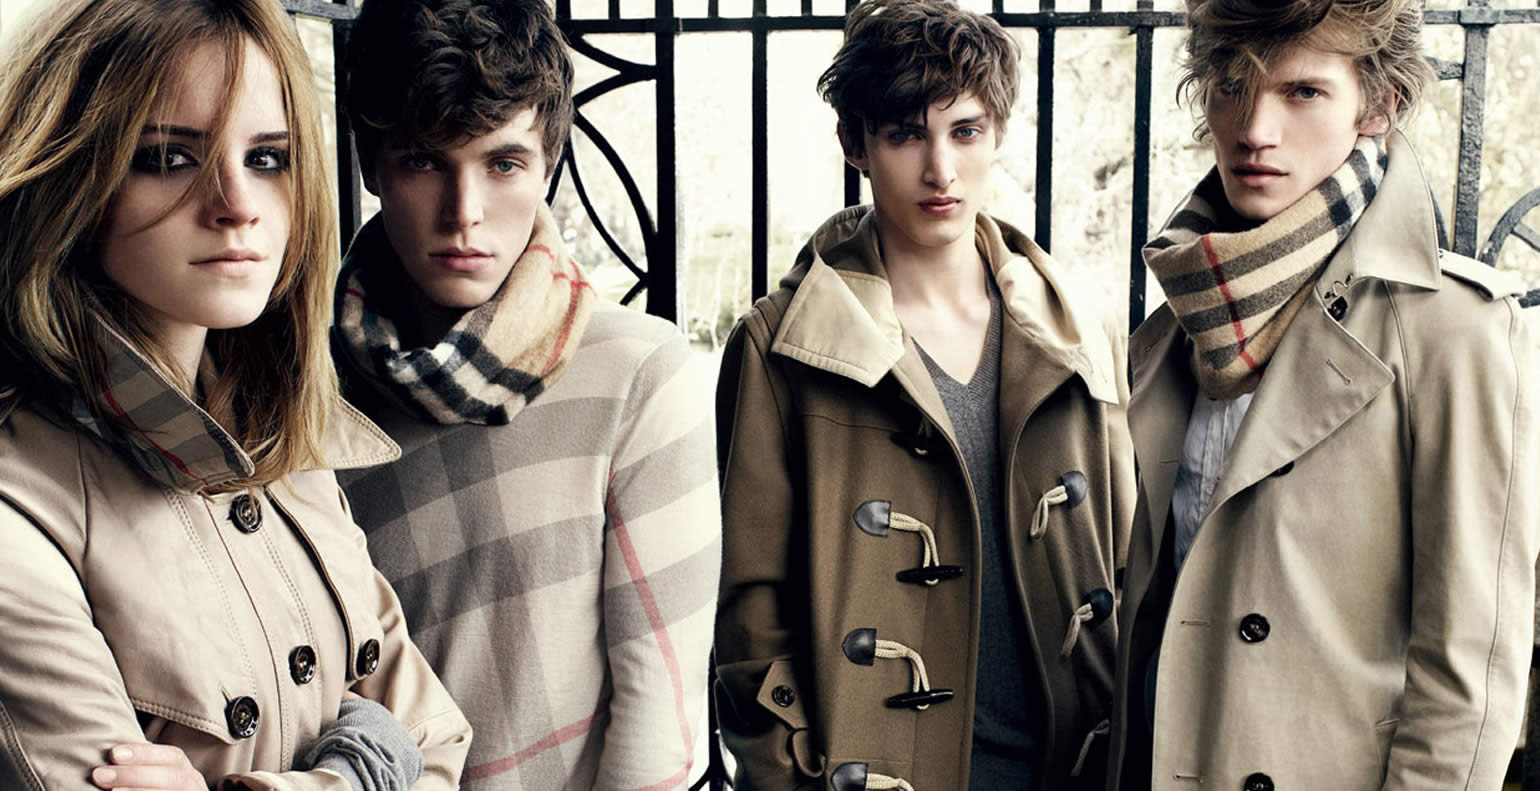 luxury good and burberry Why you don't need rich customers to sell luxury goods  being a luxury brand isn't what it's  burberry didn't double its sales or boost its stock in 2012.